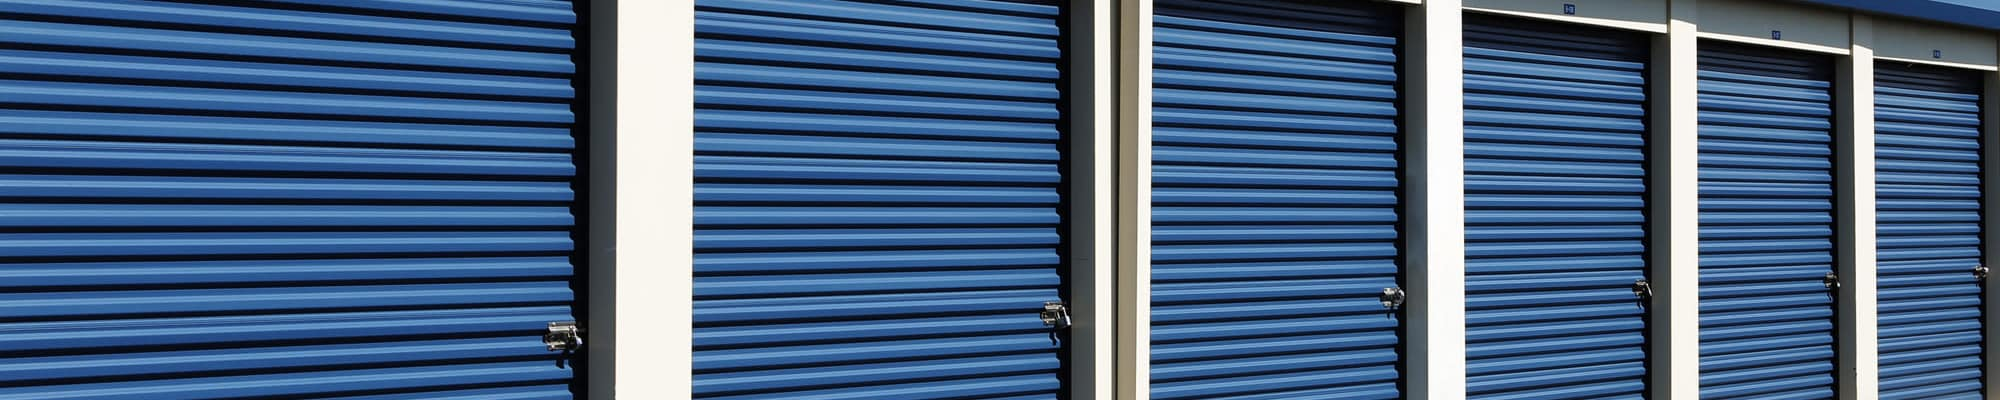 Reviews of Midgard Self Storage in Greenville, South Carolina